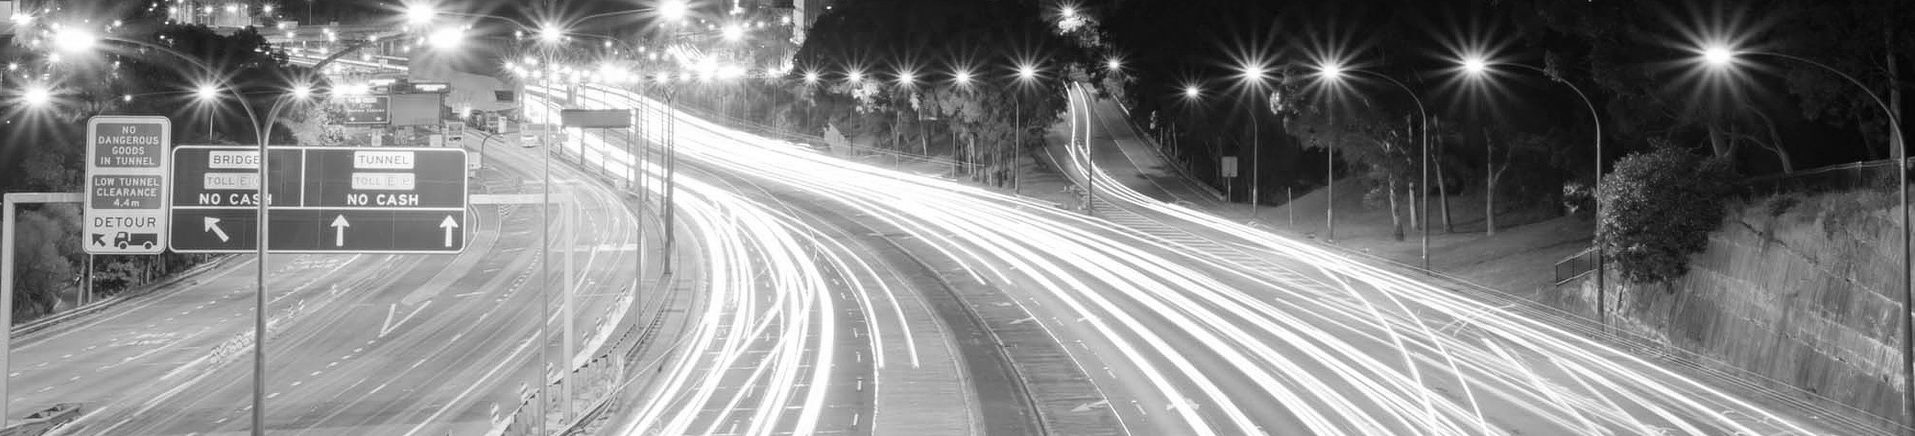 Sydney road where our driving offence case studies can occur